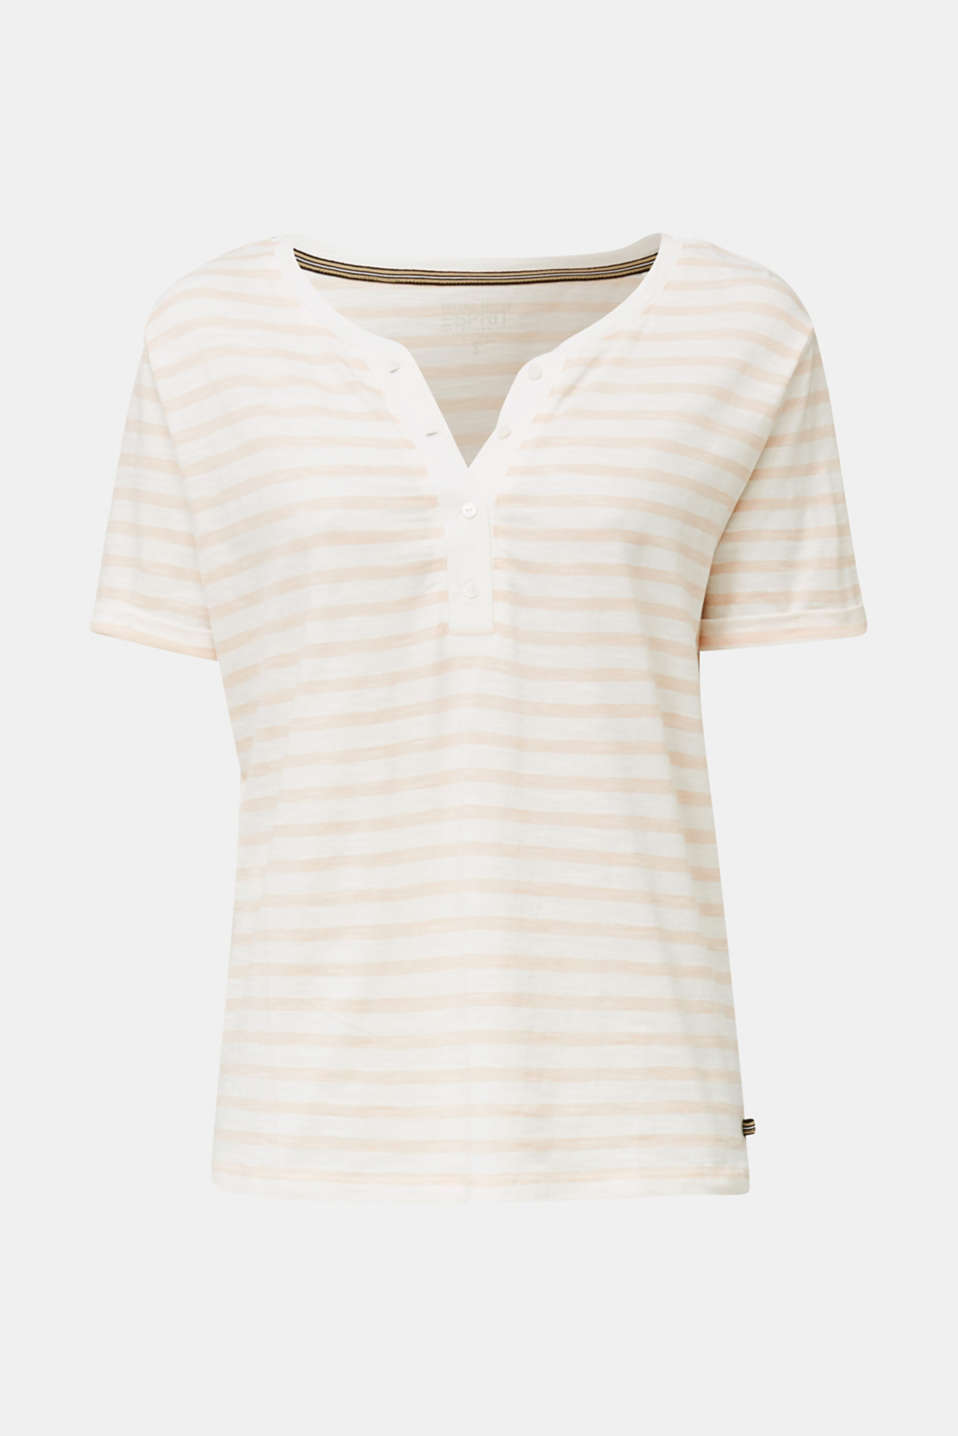 Striped Henley T-shirt, 100% organic cotton, PEACH 4, detail image number 7